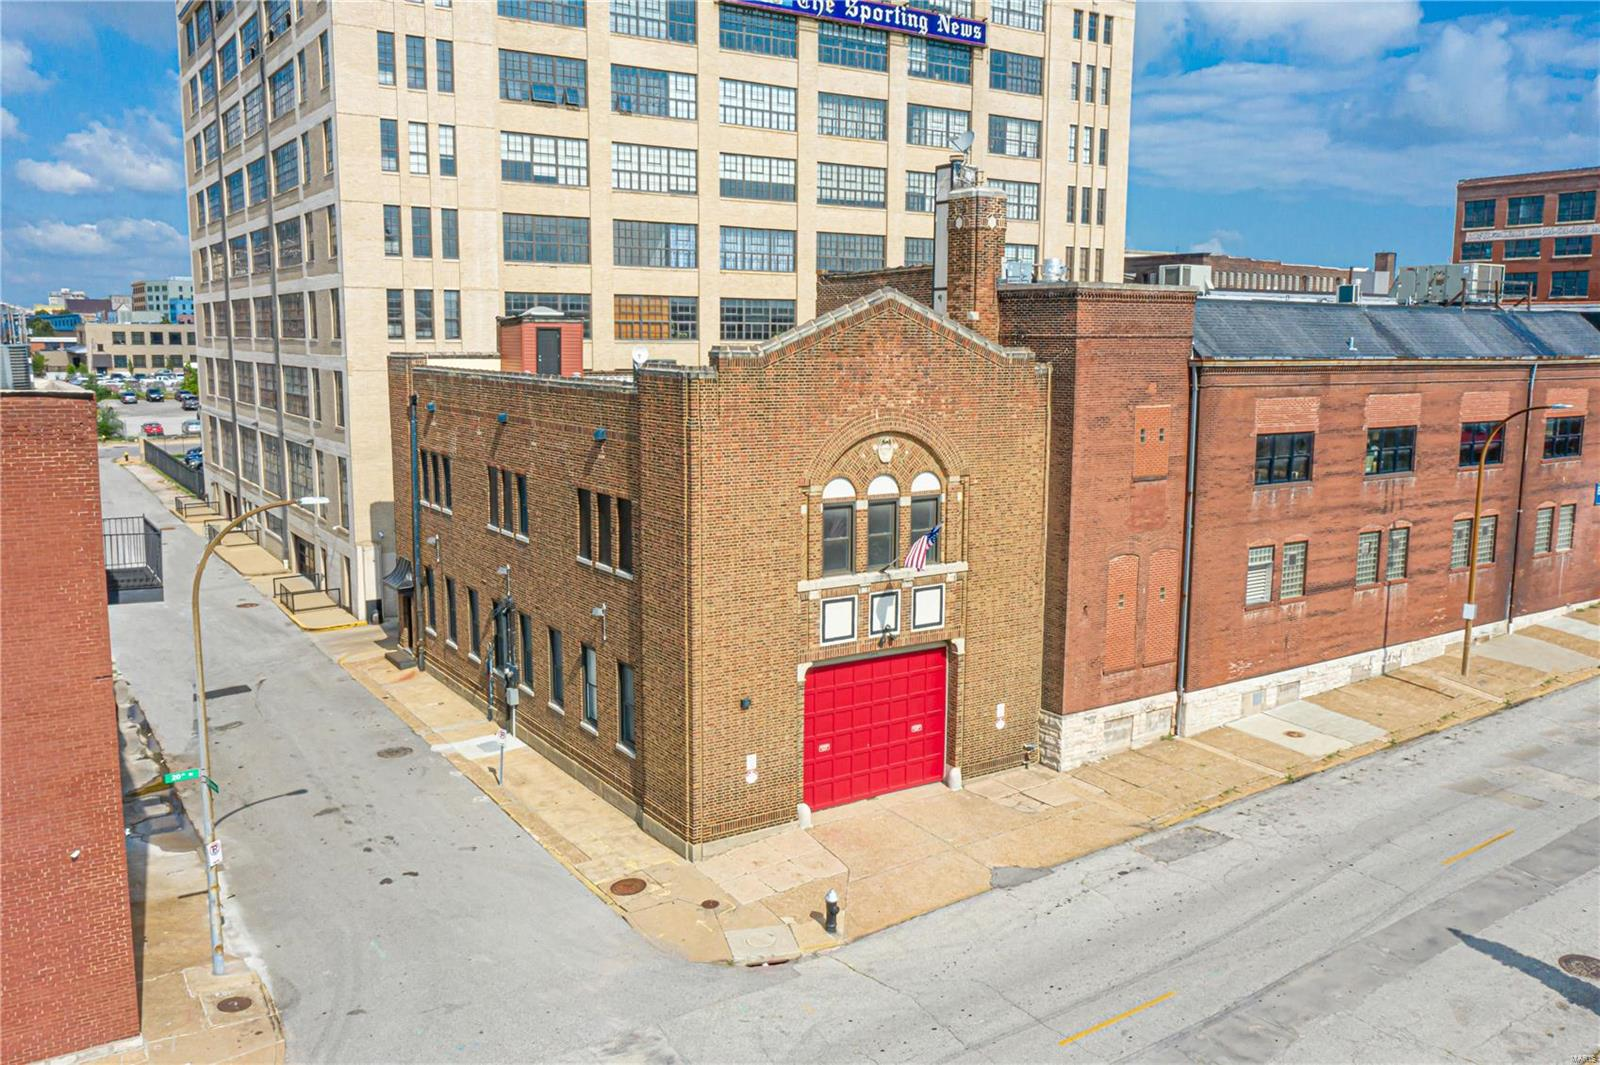 """Located just two blocks from the new MLS Soccer stadium is this rare and unique opportunity to buy a signature property - Engine House No. 32 built in 1919. The potential for this building on the National Registry of Historic Places is endless: restaurant/bar, creative workspace, gallery, or a live/work residence. Currently, the main level is used as a gallery and storage space with a parking garage. The 2nd level loft features an expansive, open living area with 15' ceilings, dramatic skylights, original yellow pine floors, fireplace & gallery lighting. 2 bedrooms, and 2 full baths. The kitchen is equipped with a center island, gas range, and white double-height cabinets. An open office/library with a spiral staircase takes you to the rooftop for panoramic views of the city.  Located adjacent to Brick River Cider on Washington Avenue & close to The Schlafly Tap Room, Fields Food and much more. Zoned """"I"""", which includes commercial, but no walkup window or drive-throughs."""